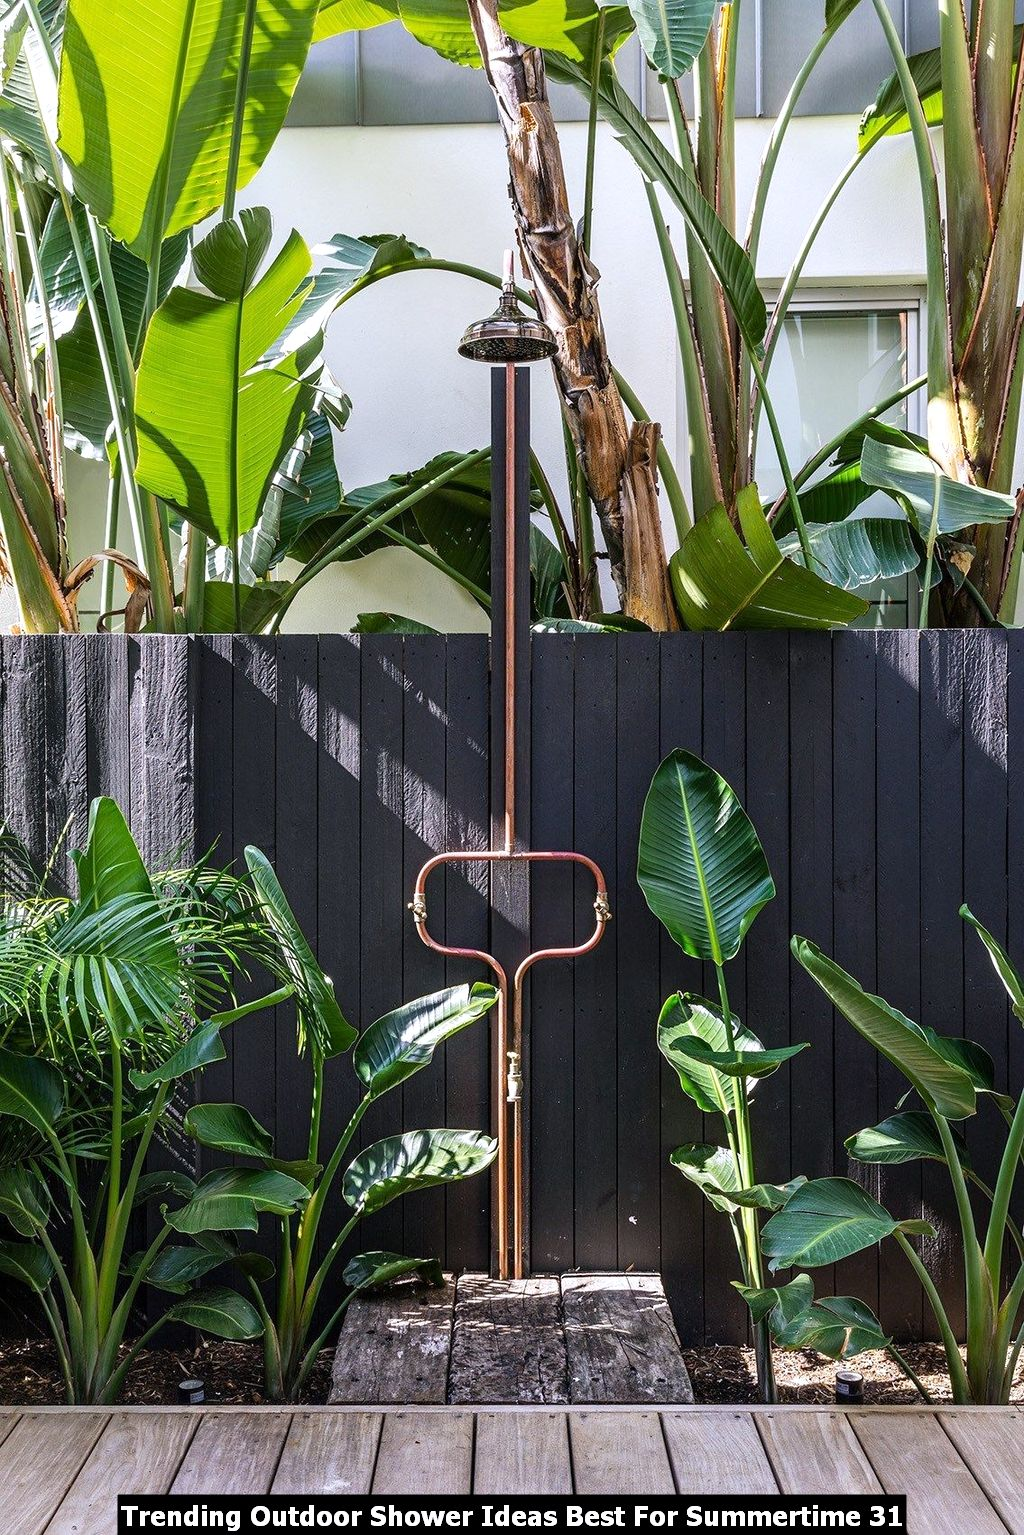 Trending Outdoor Shower Ideas Best For Summertime 31